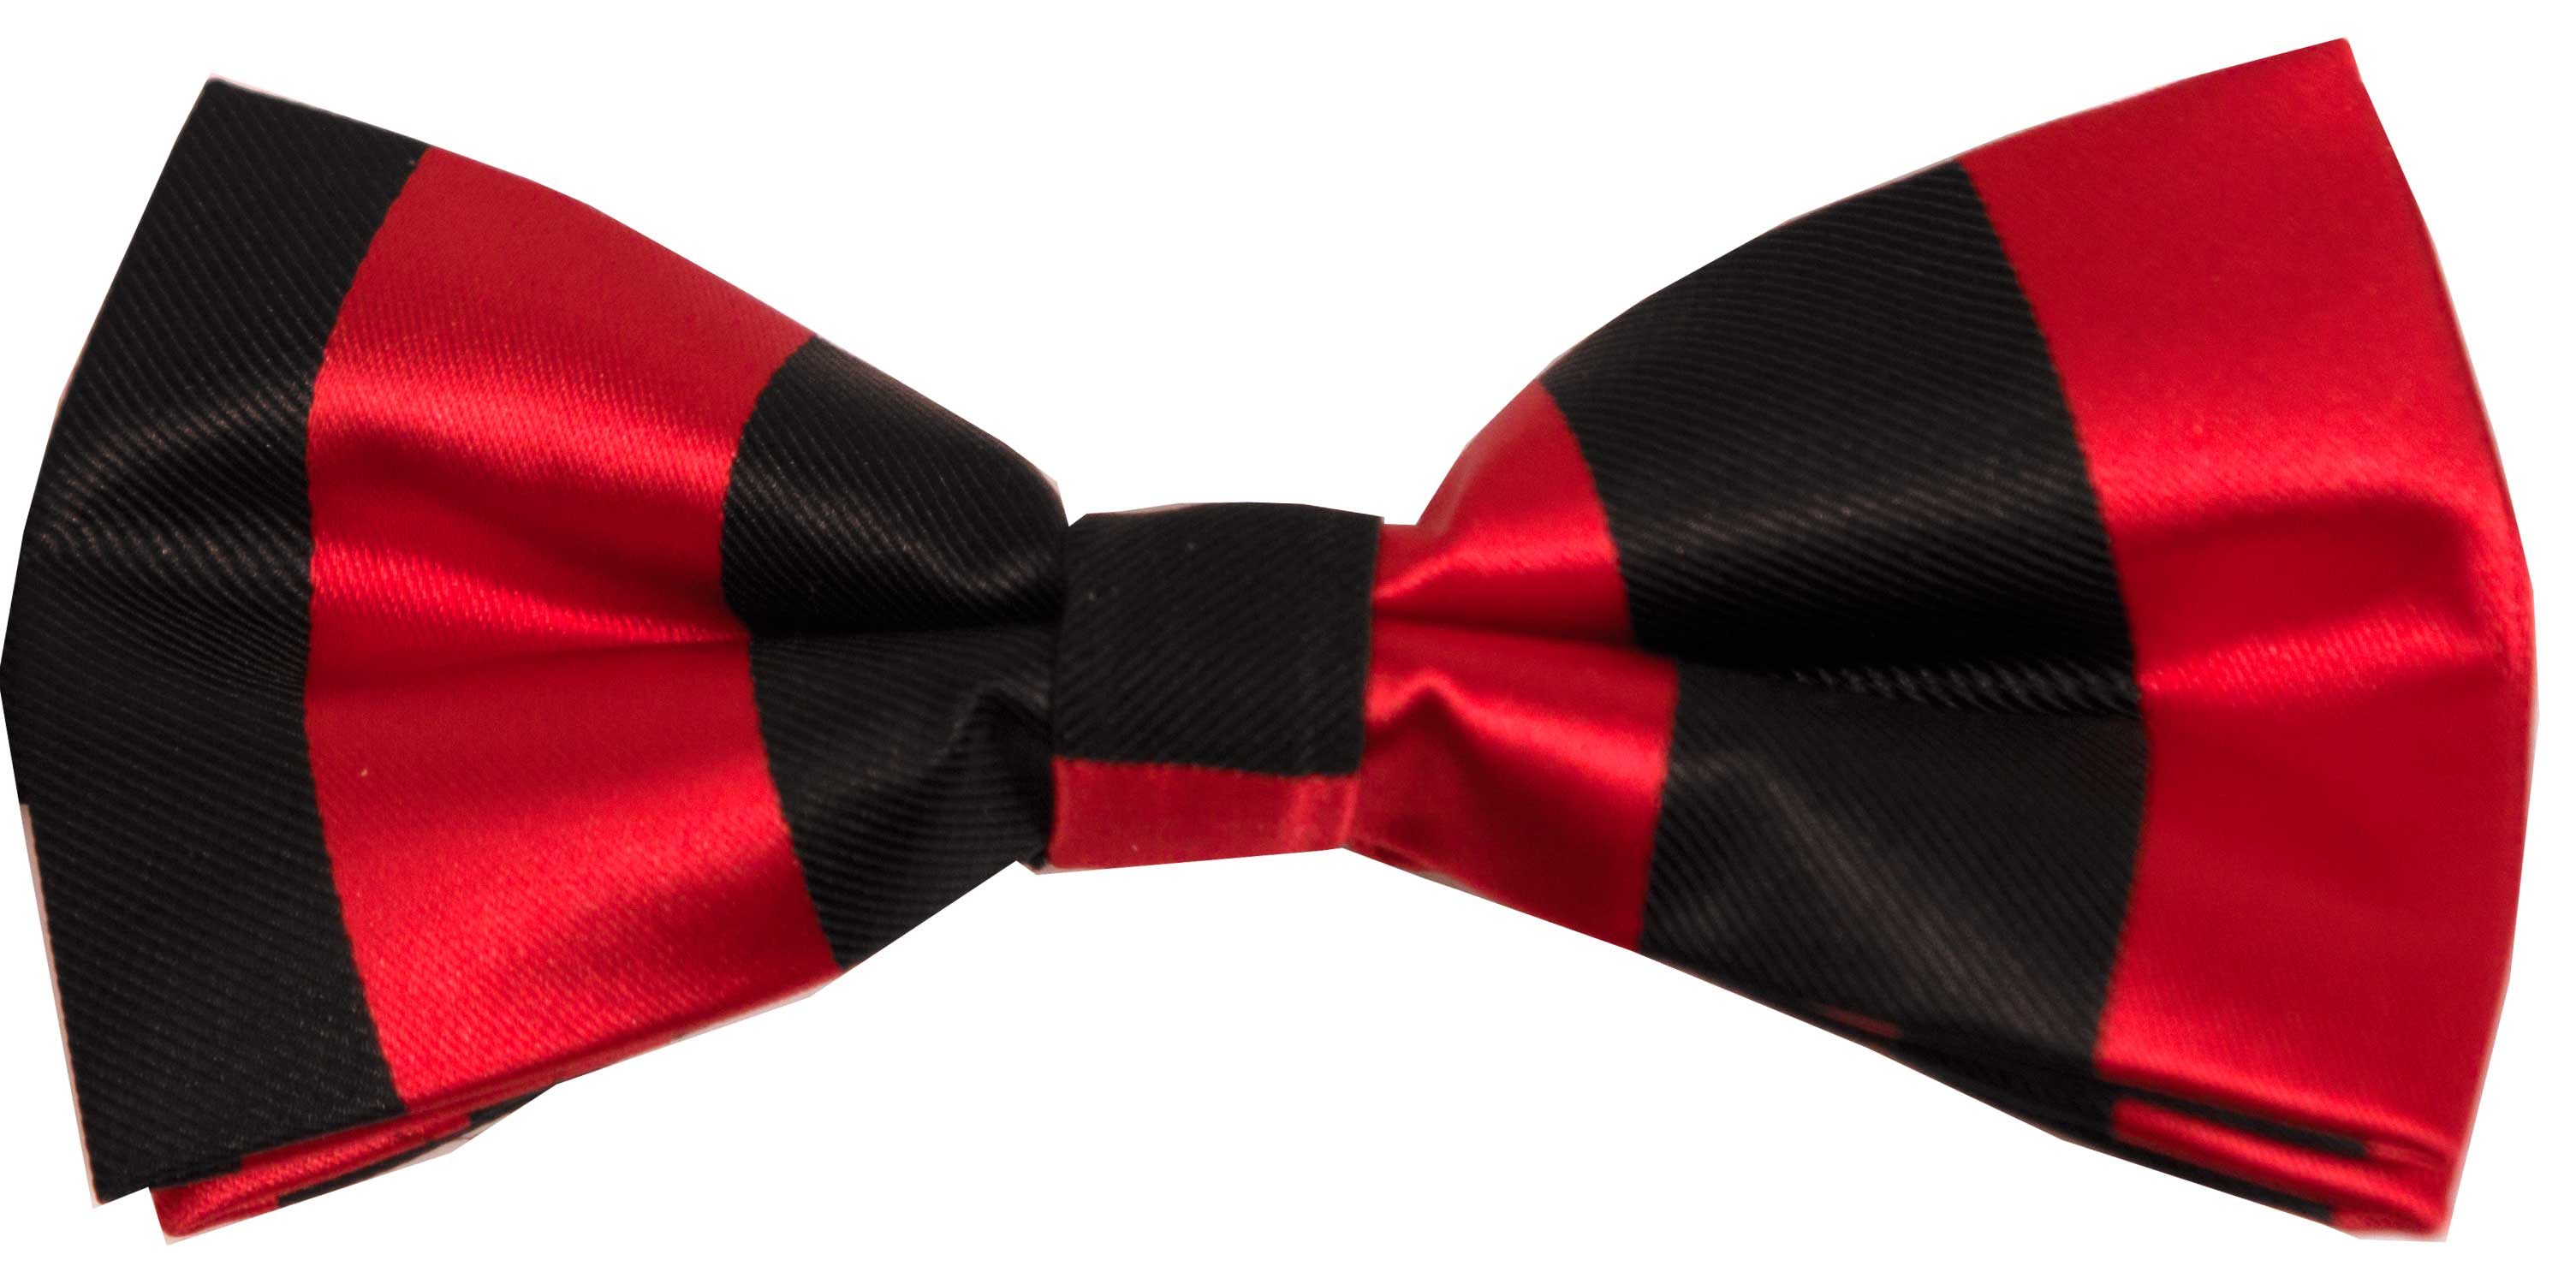 Bow tie (red and black)